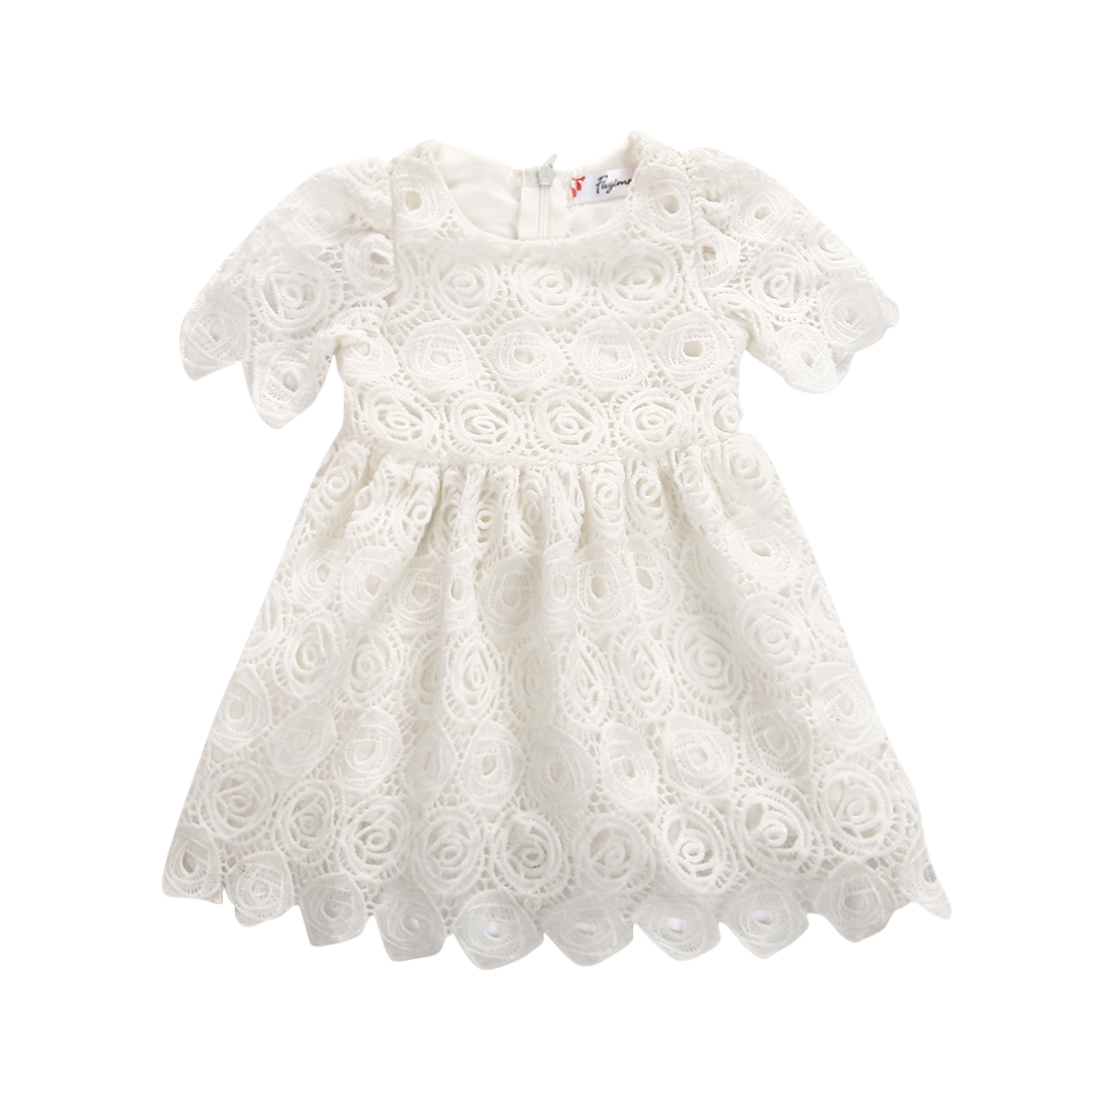 Infant Toddler Baby Girls White Lace Tutu Dress Floral Party Wedding Princess Dresses Easter Costumes for girls baby girls dress summer lace princess kids dresses for girls embroidered solid toddler costumes for party wedding child clothing